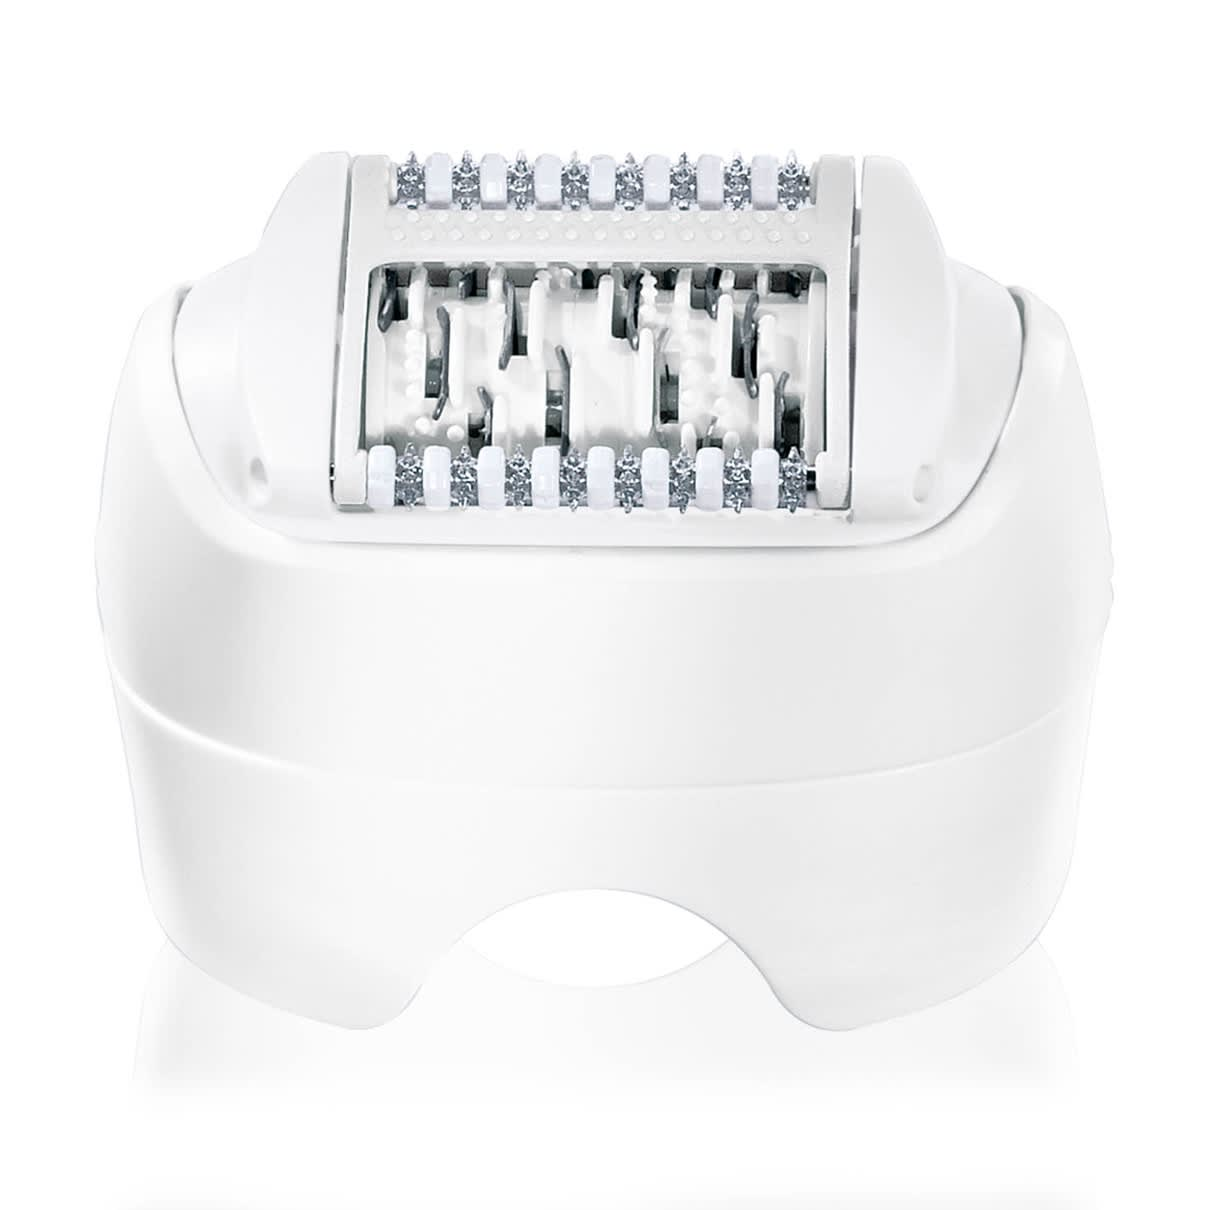 Braun Silk-épil epilation head